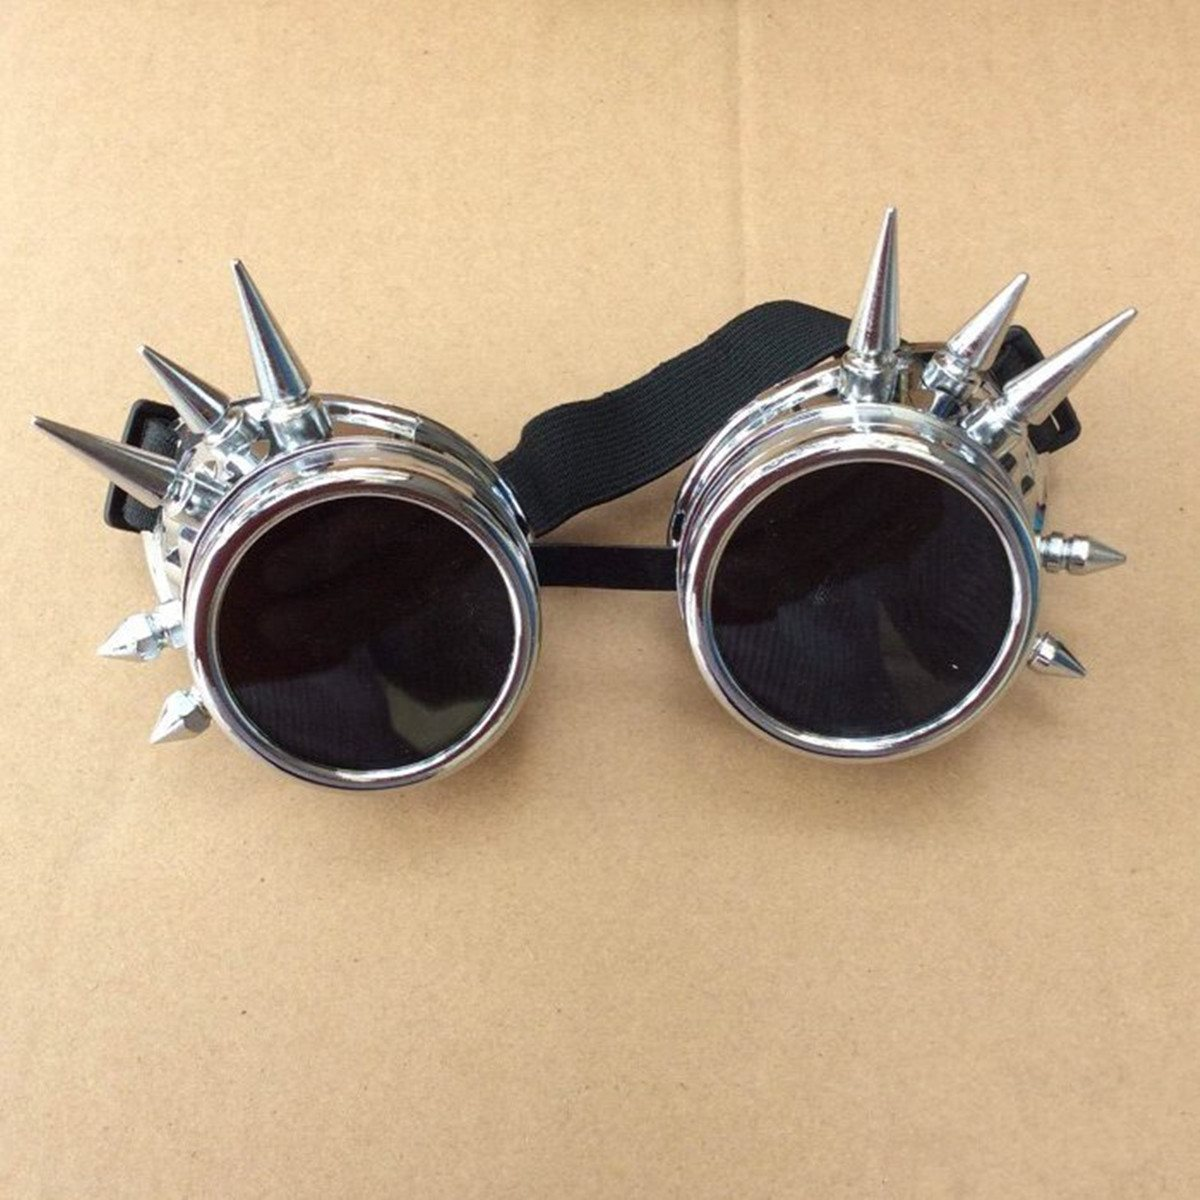 Fashion Silver Steampunk Goggles Spikey Burning Man Costume Cosplay Gothic Punk  Safety Goggles xeltek private seat tqfp64 ta050 b006 burning test